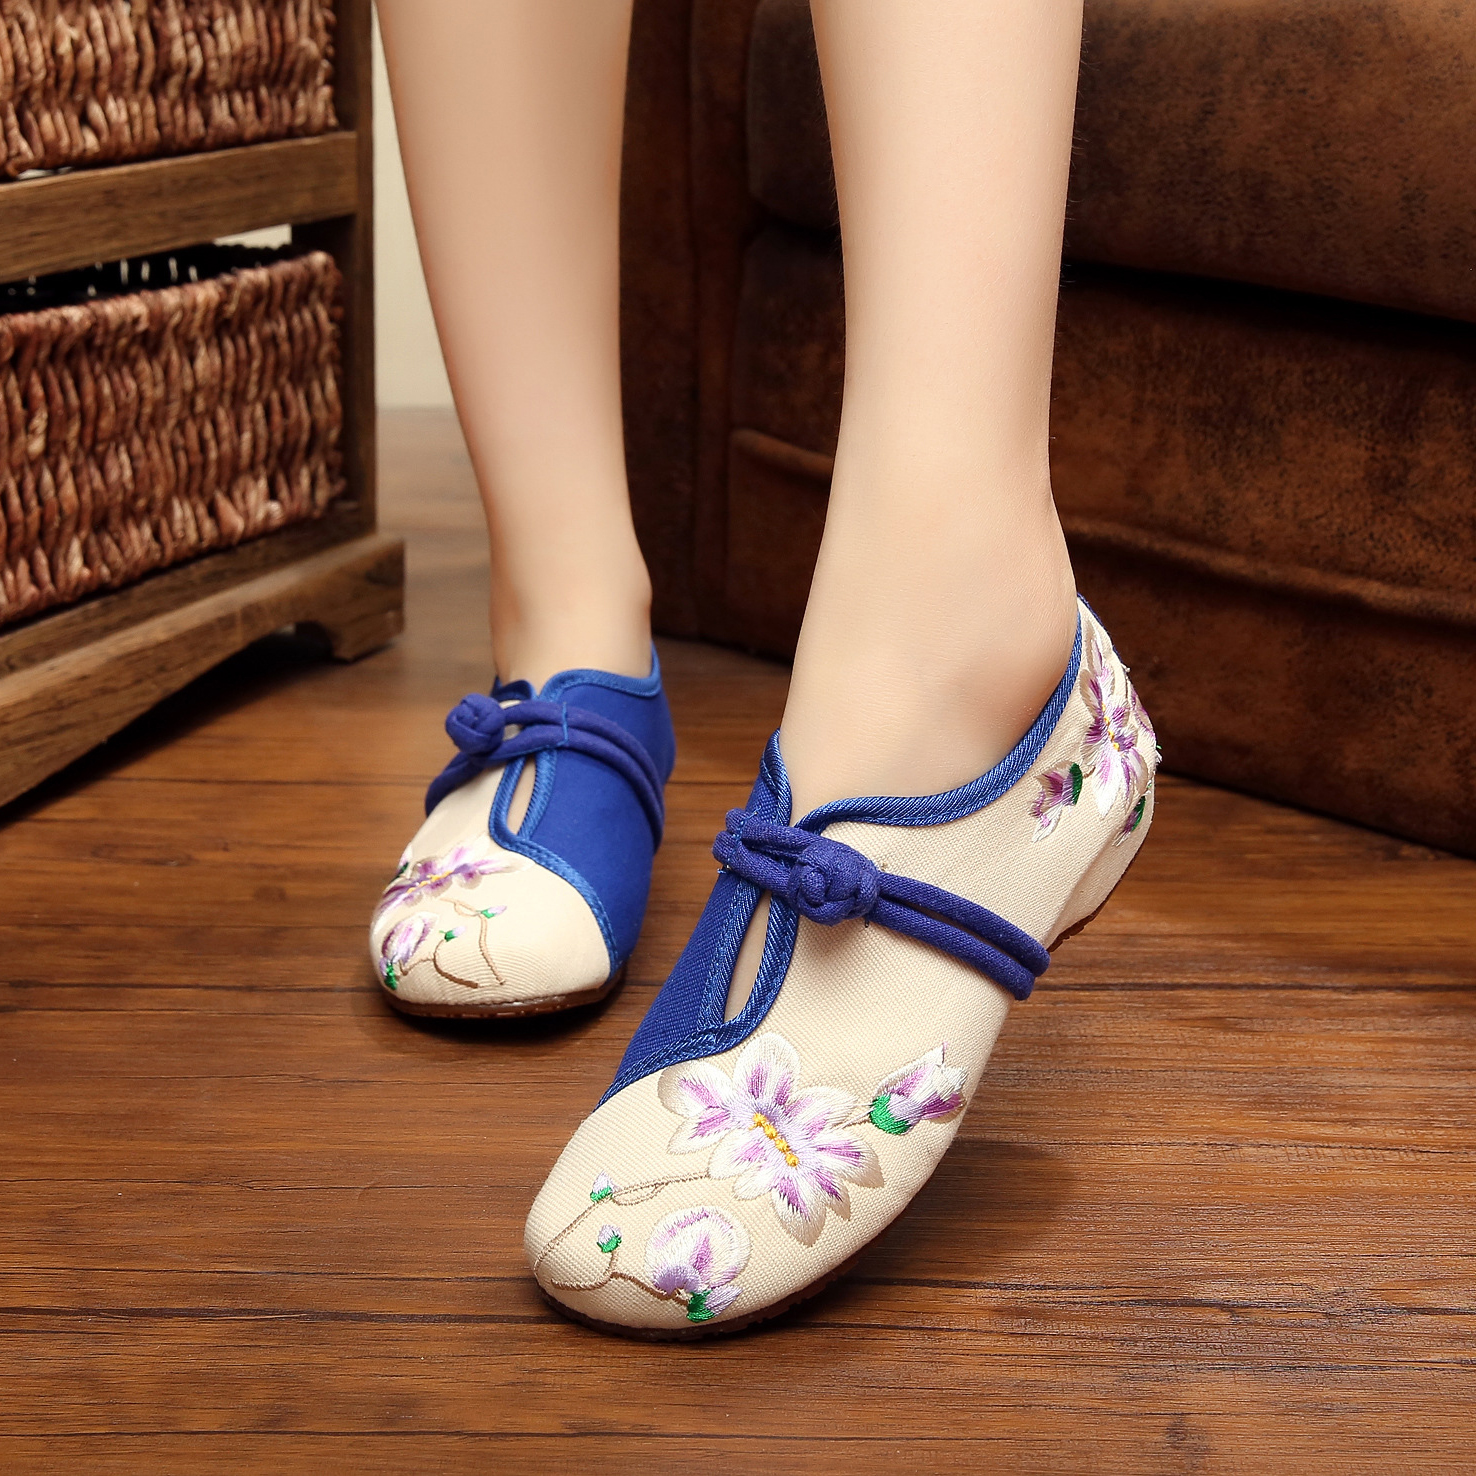 Best sale Spring and Autumn fashion womens flats shoes blue and white fresh embroidery casual shoes for ladies free shipping<br><br>Aliexpress